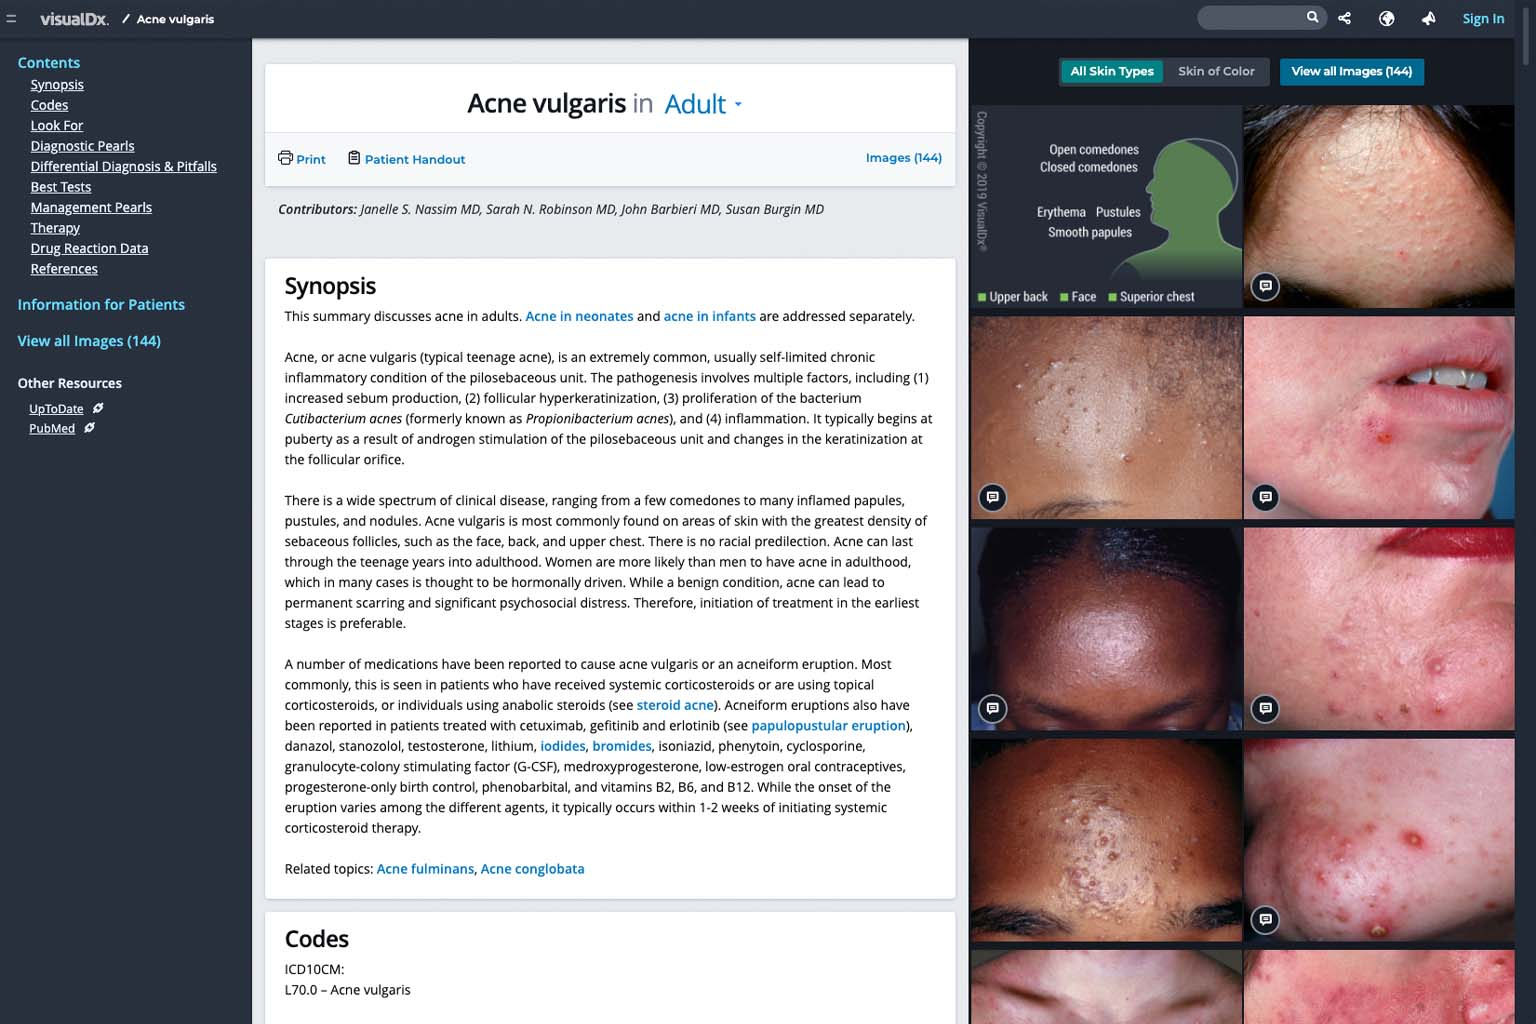 screenshot of search results for acne in VisualDx